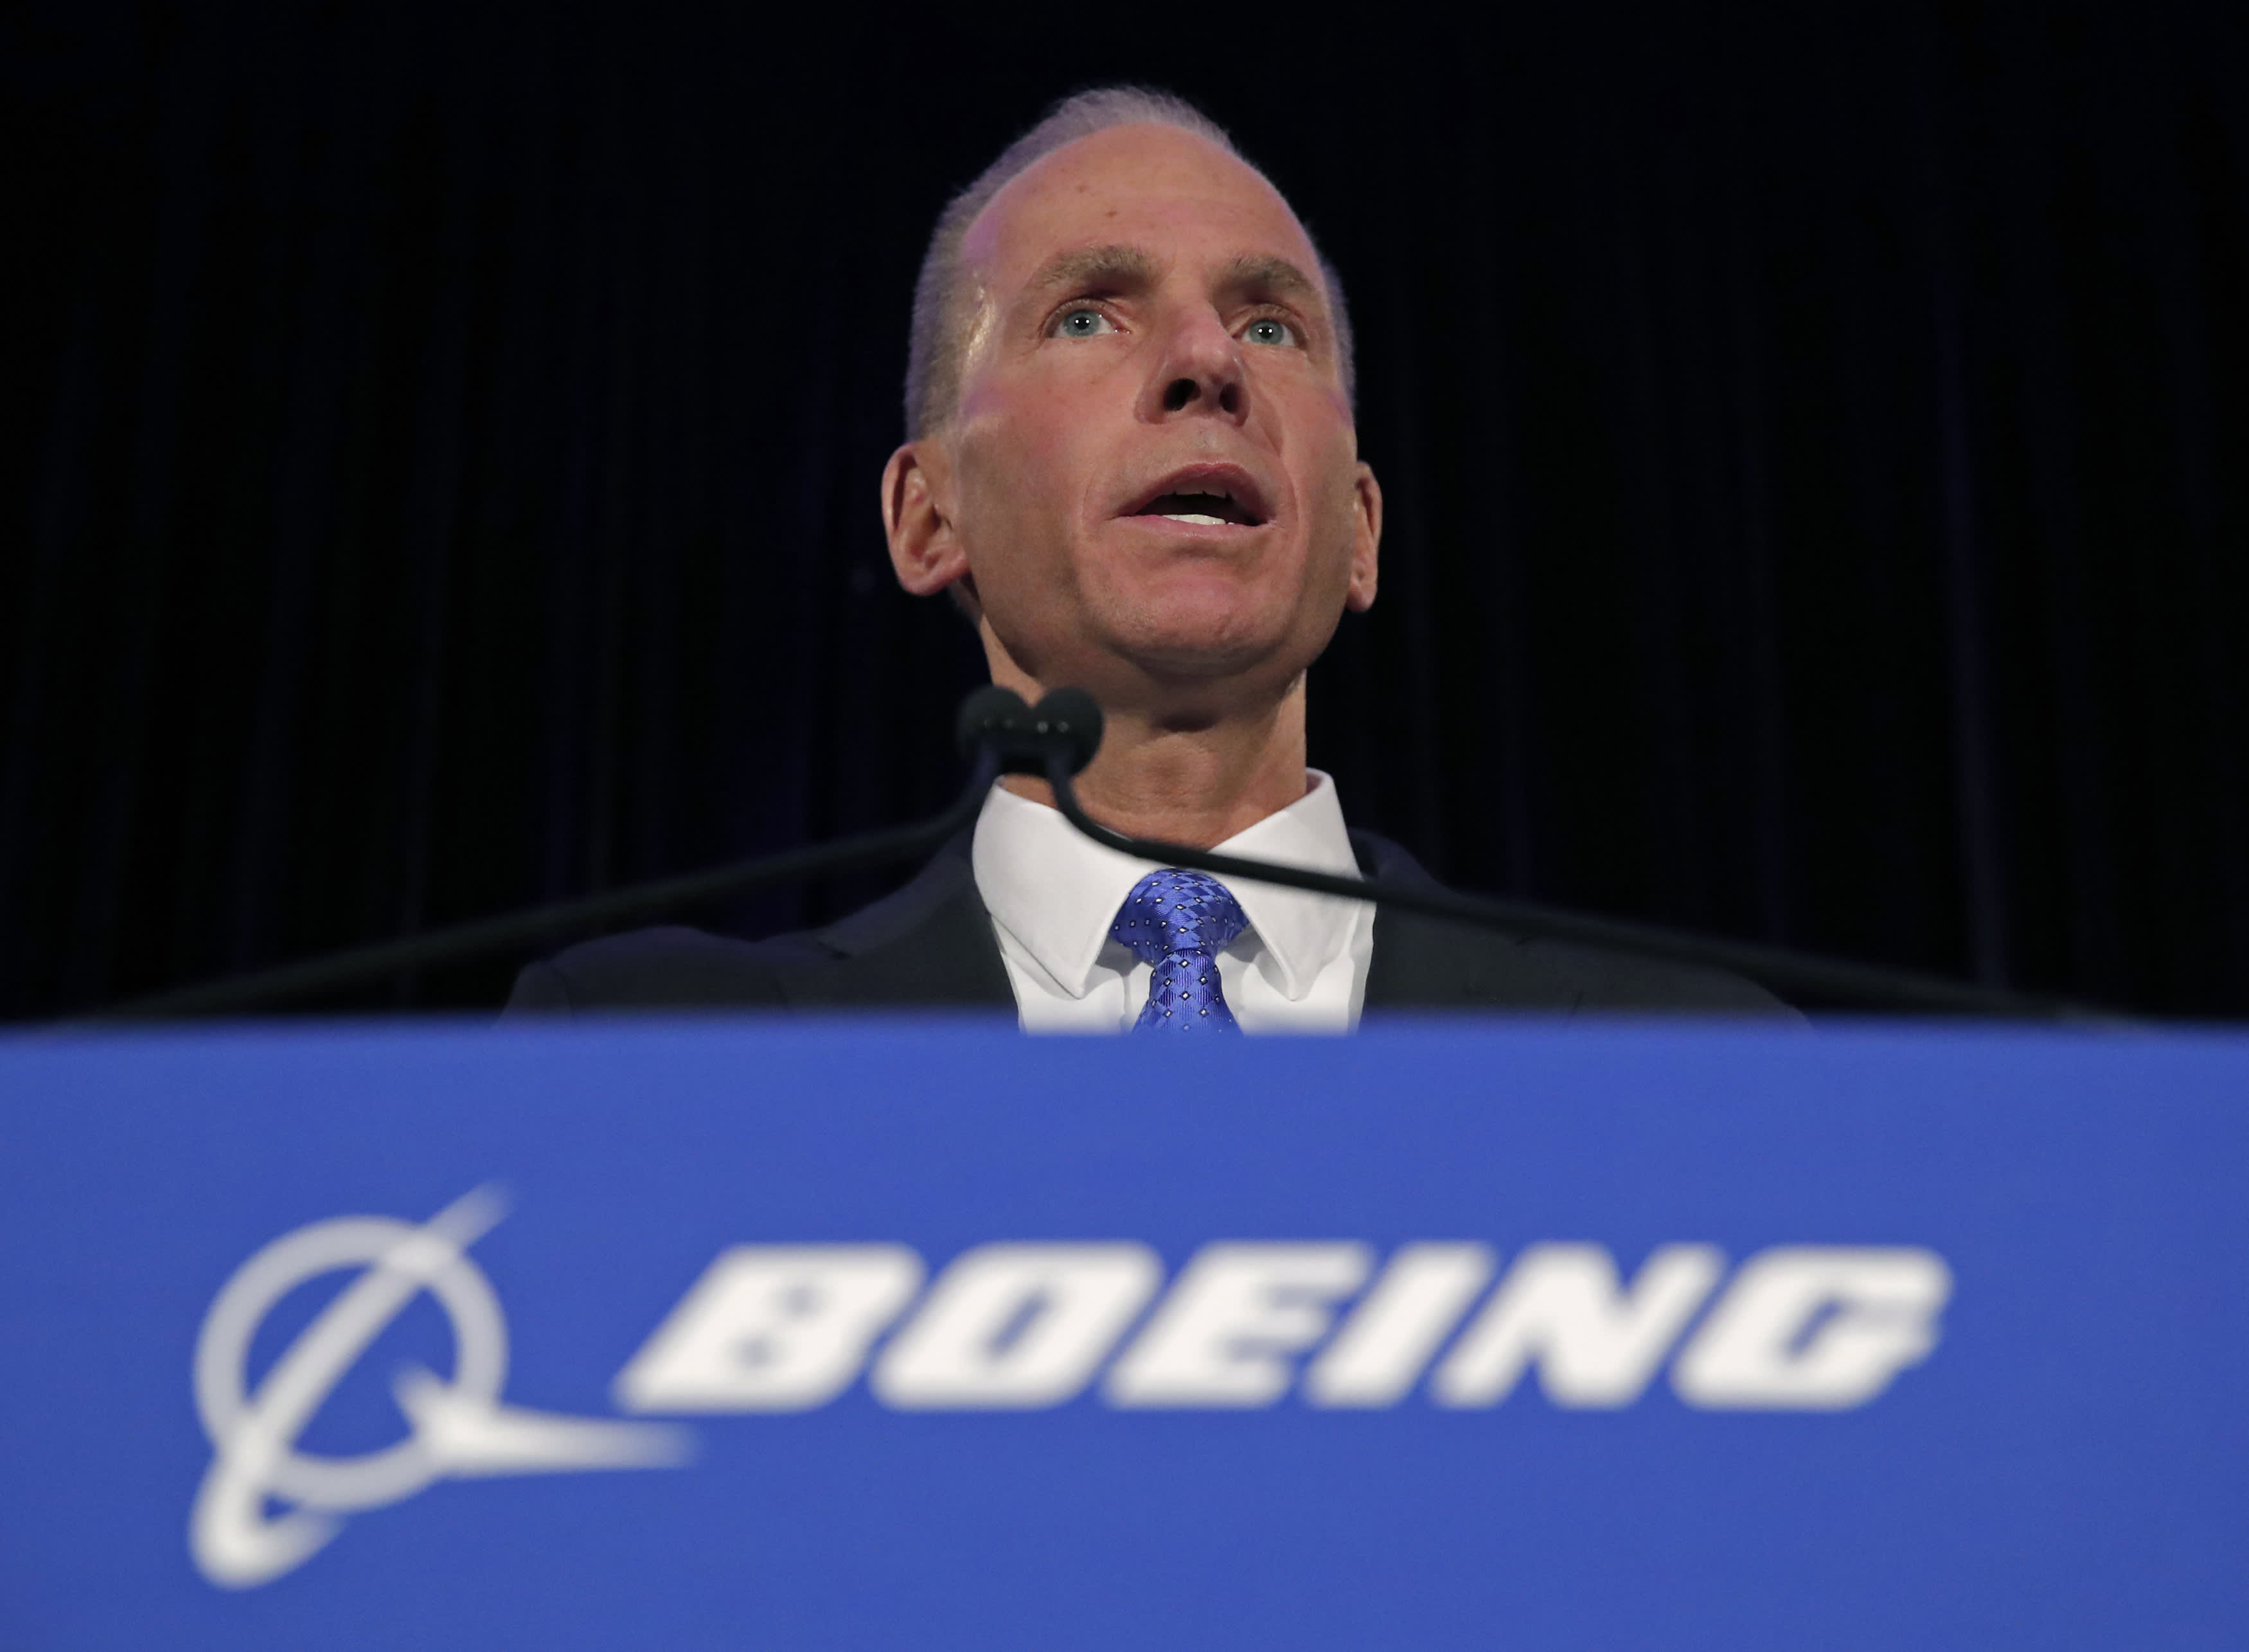 Boeing CEO to testify at House hearing on 737 Max, his first appearance before lawmakers since two fatal crashes